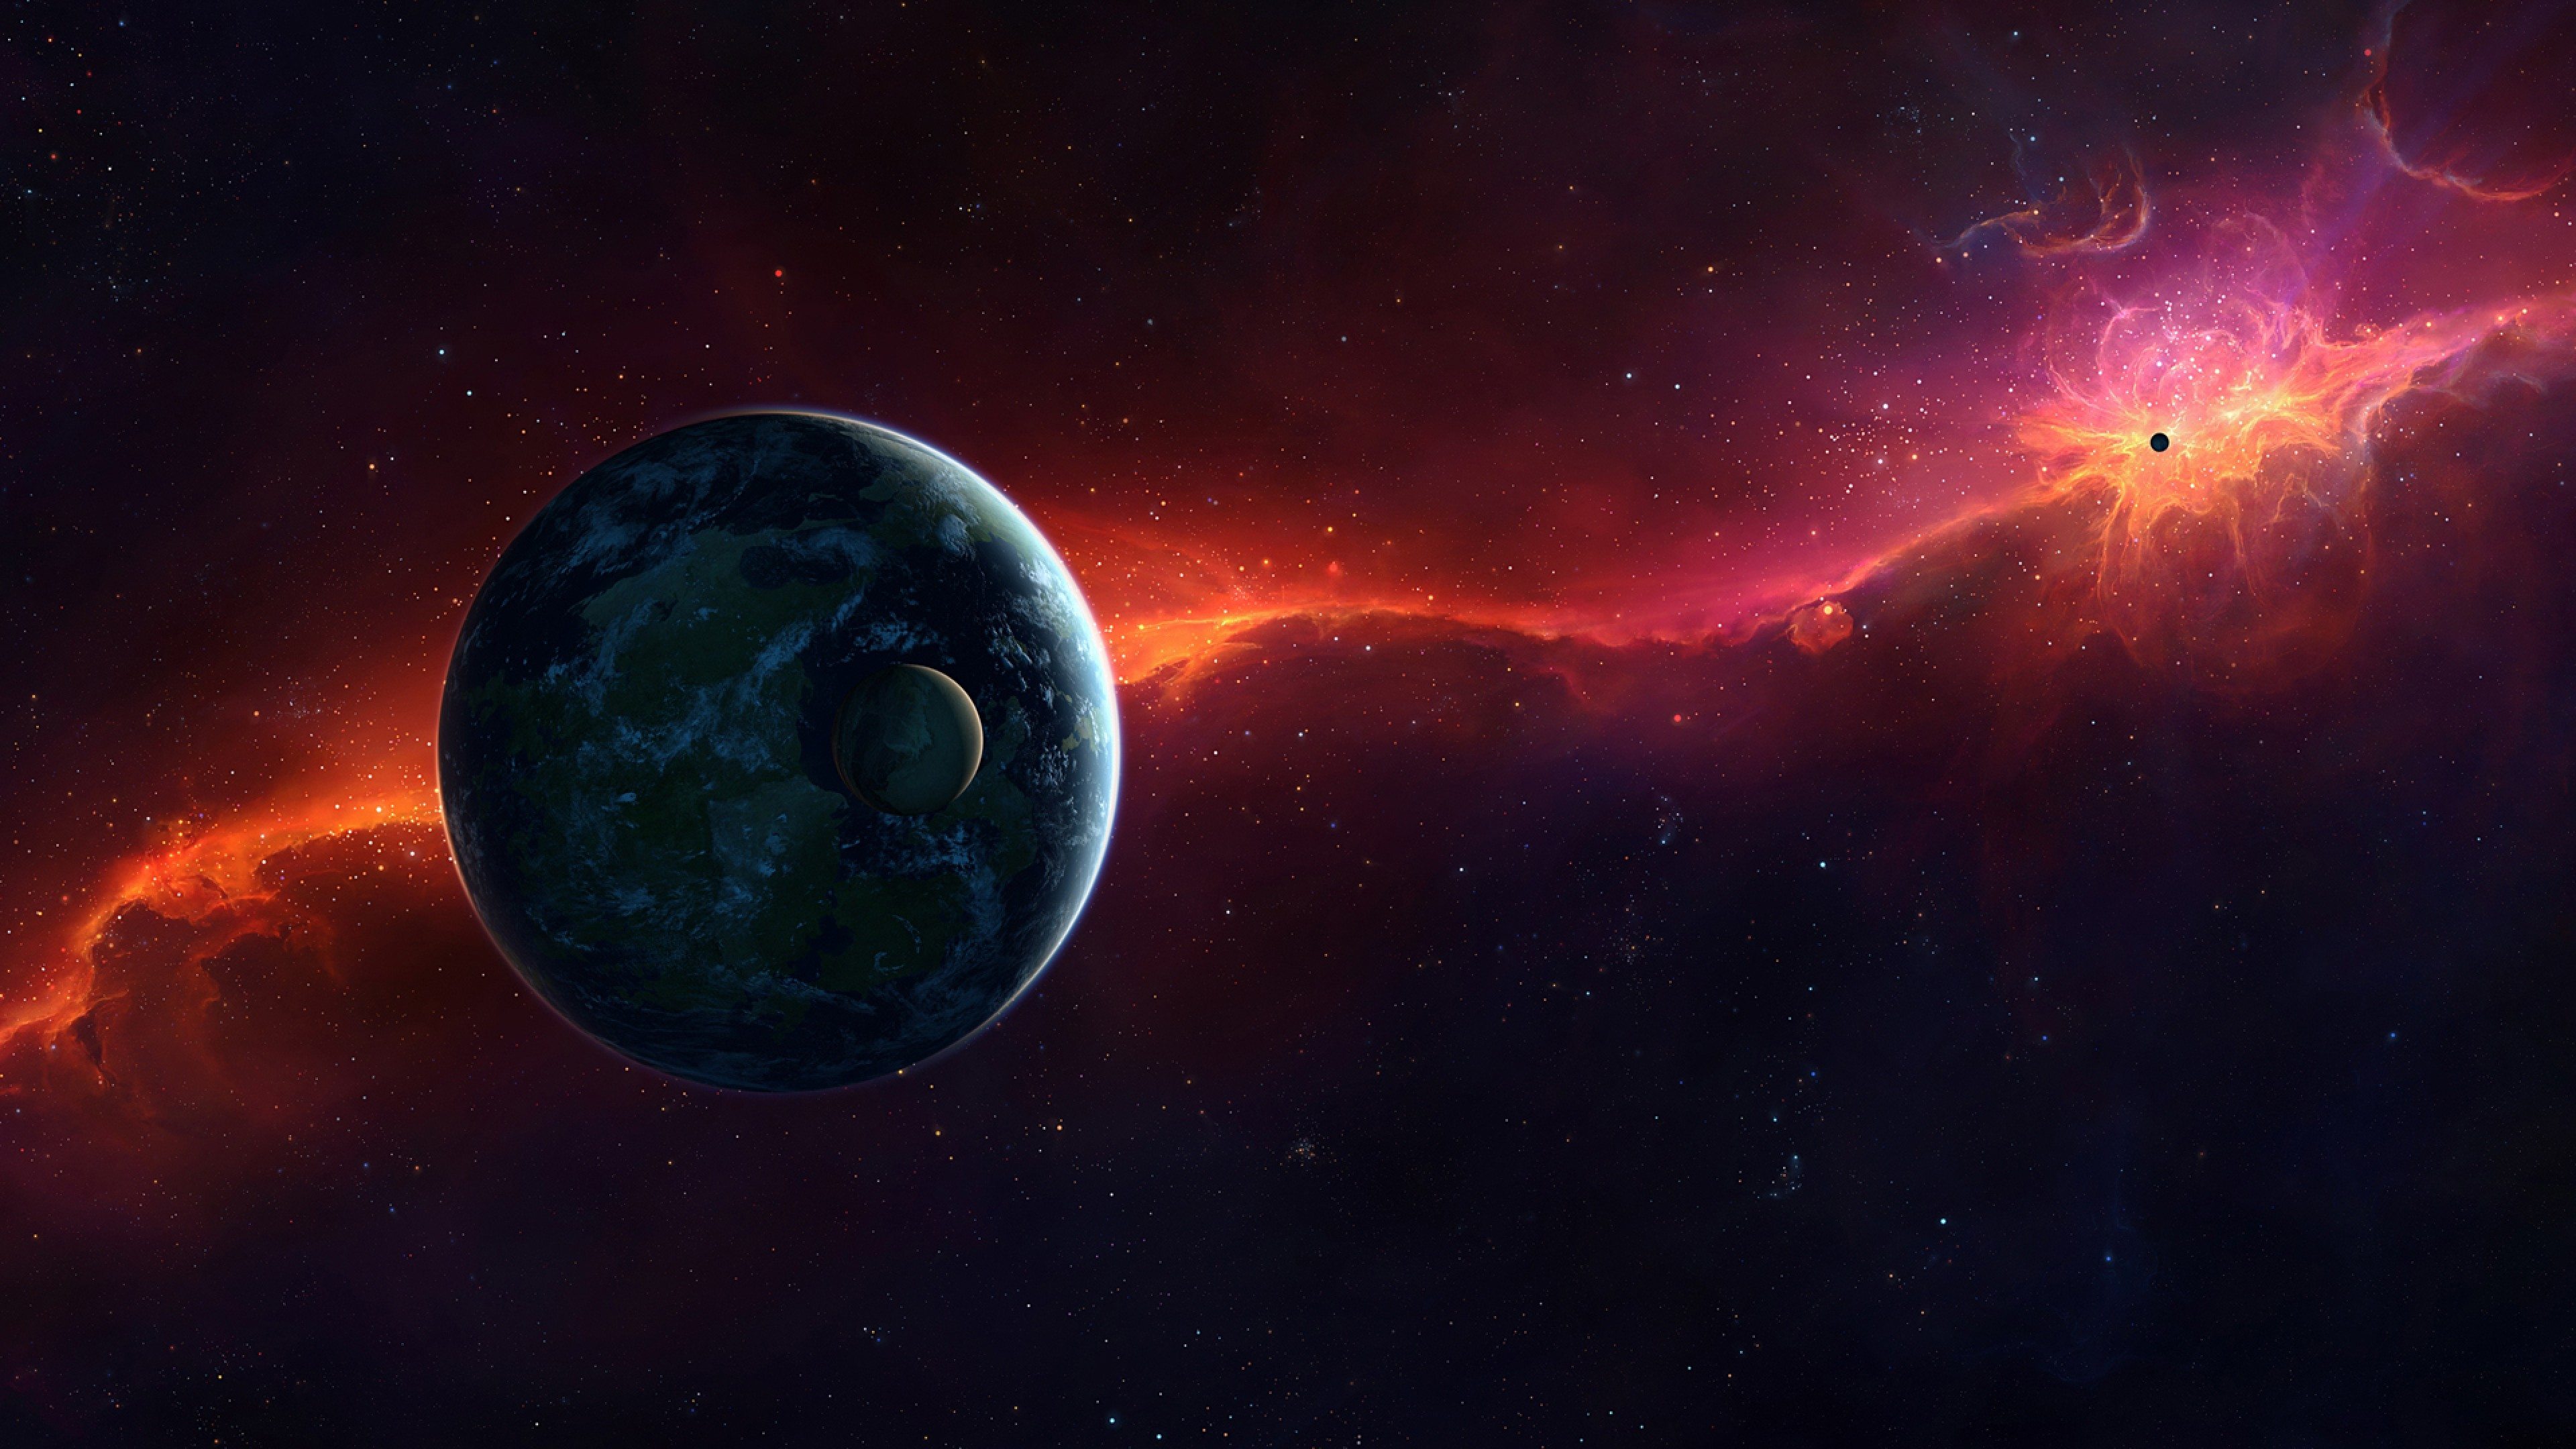 Wallpaper sci fi, space, red, planet